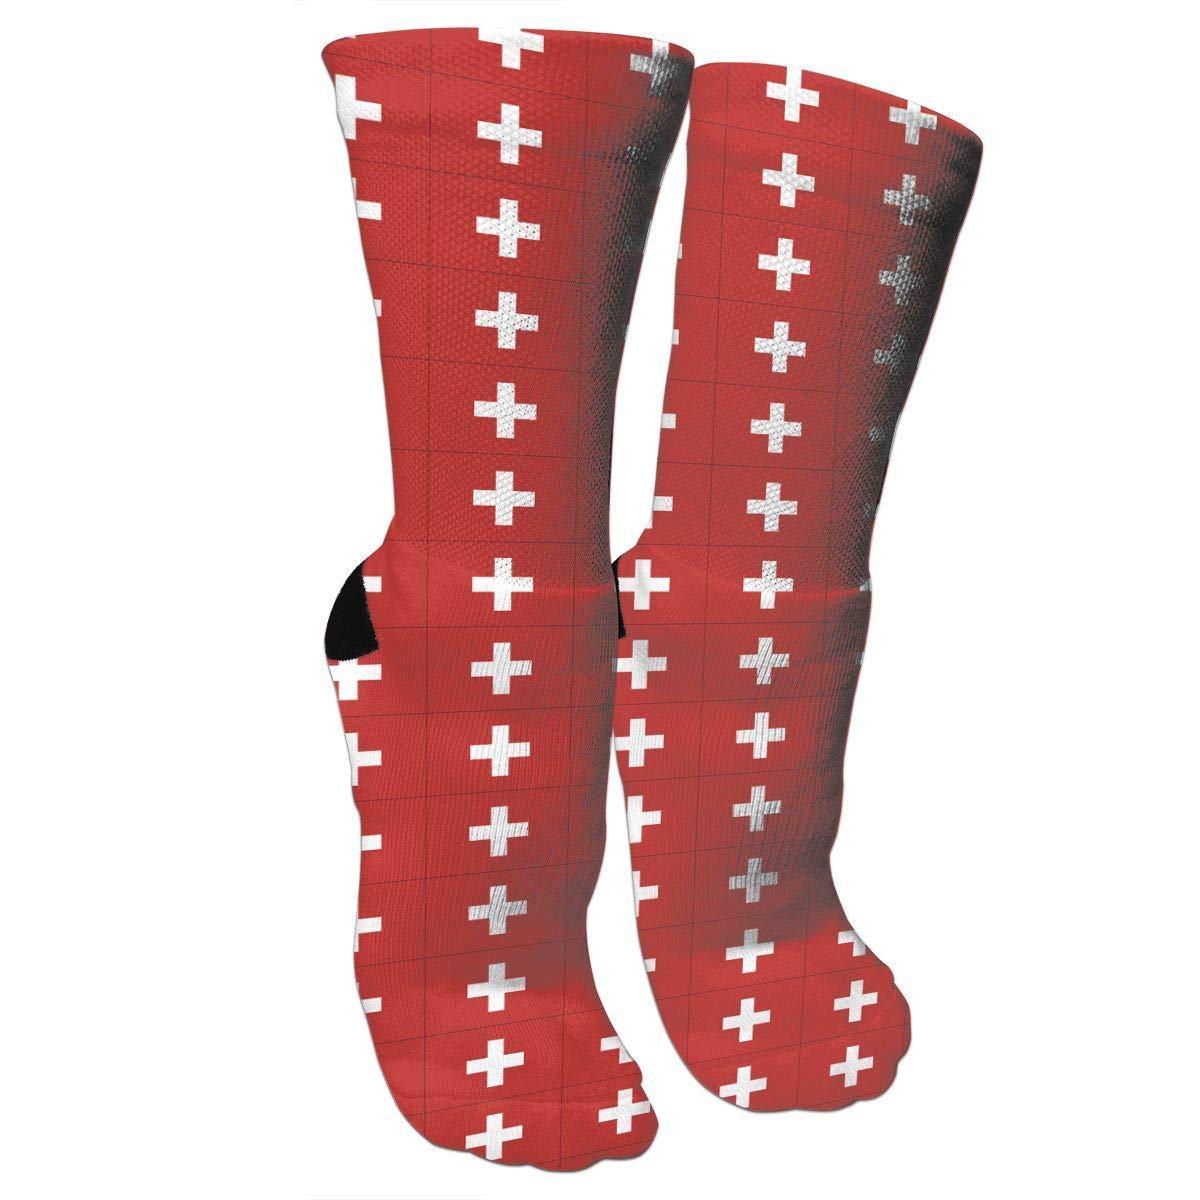 Originality Switzerland Flag Crazy Socks Casual Cotton Crew Socks Cute Funny Sock great for sports and hiking